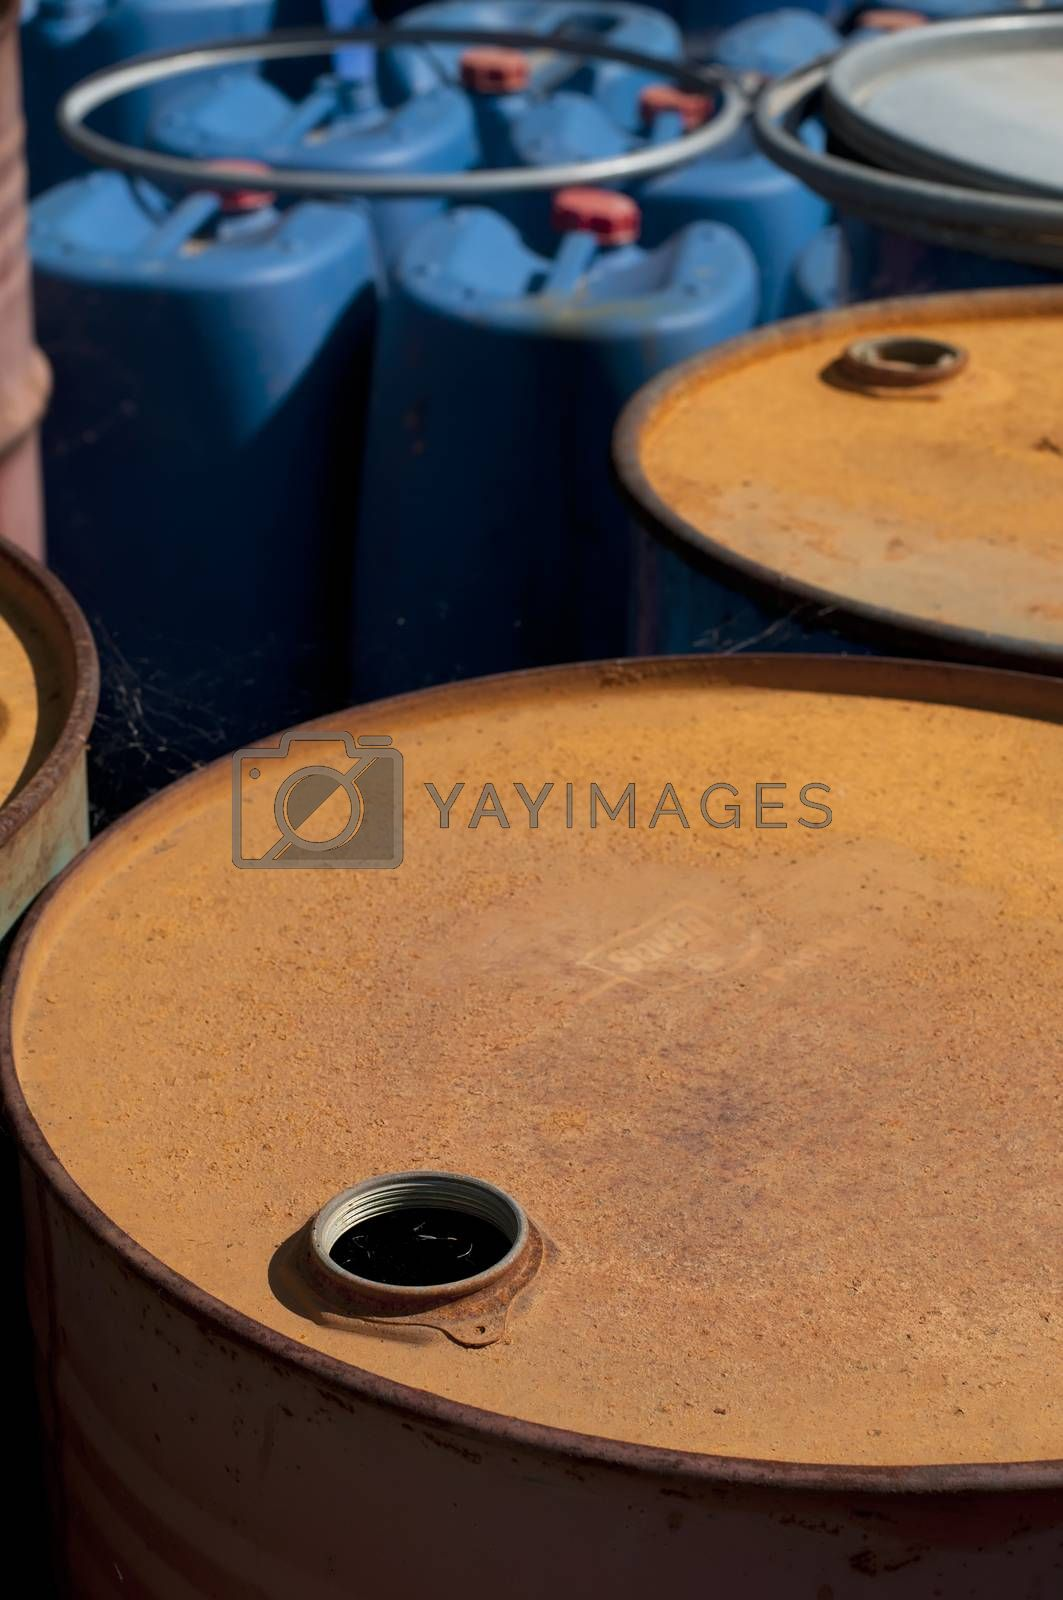 Old colored barrels for oil products. Empty rusted drums and blue canisters